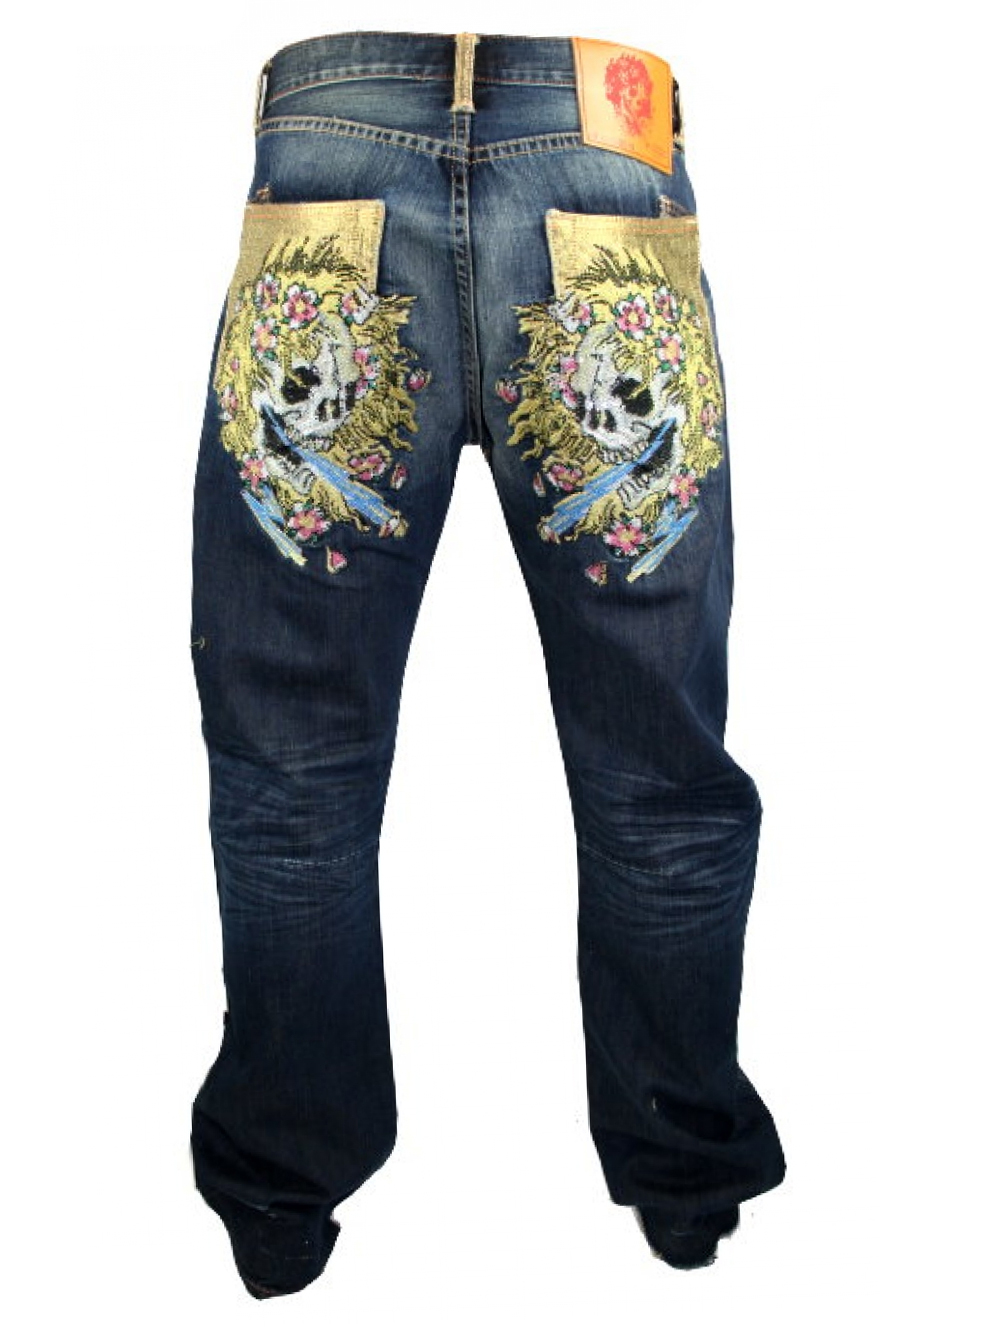 ed hardy herren vintage tattoo strass jeans mcqueen redskull neu ebay. Black Bedroom Furniture Sets. Home Design Ideas